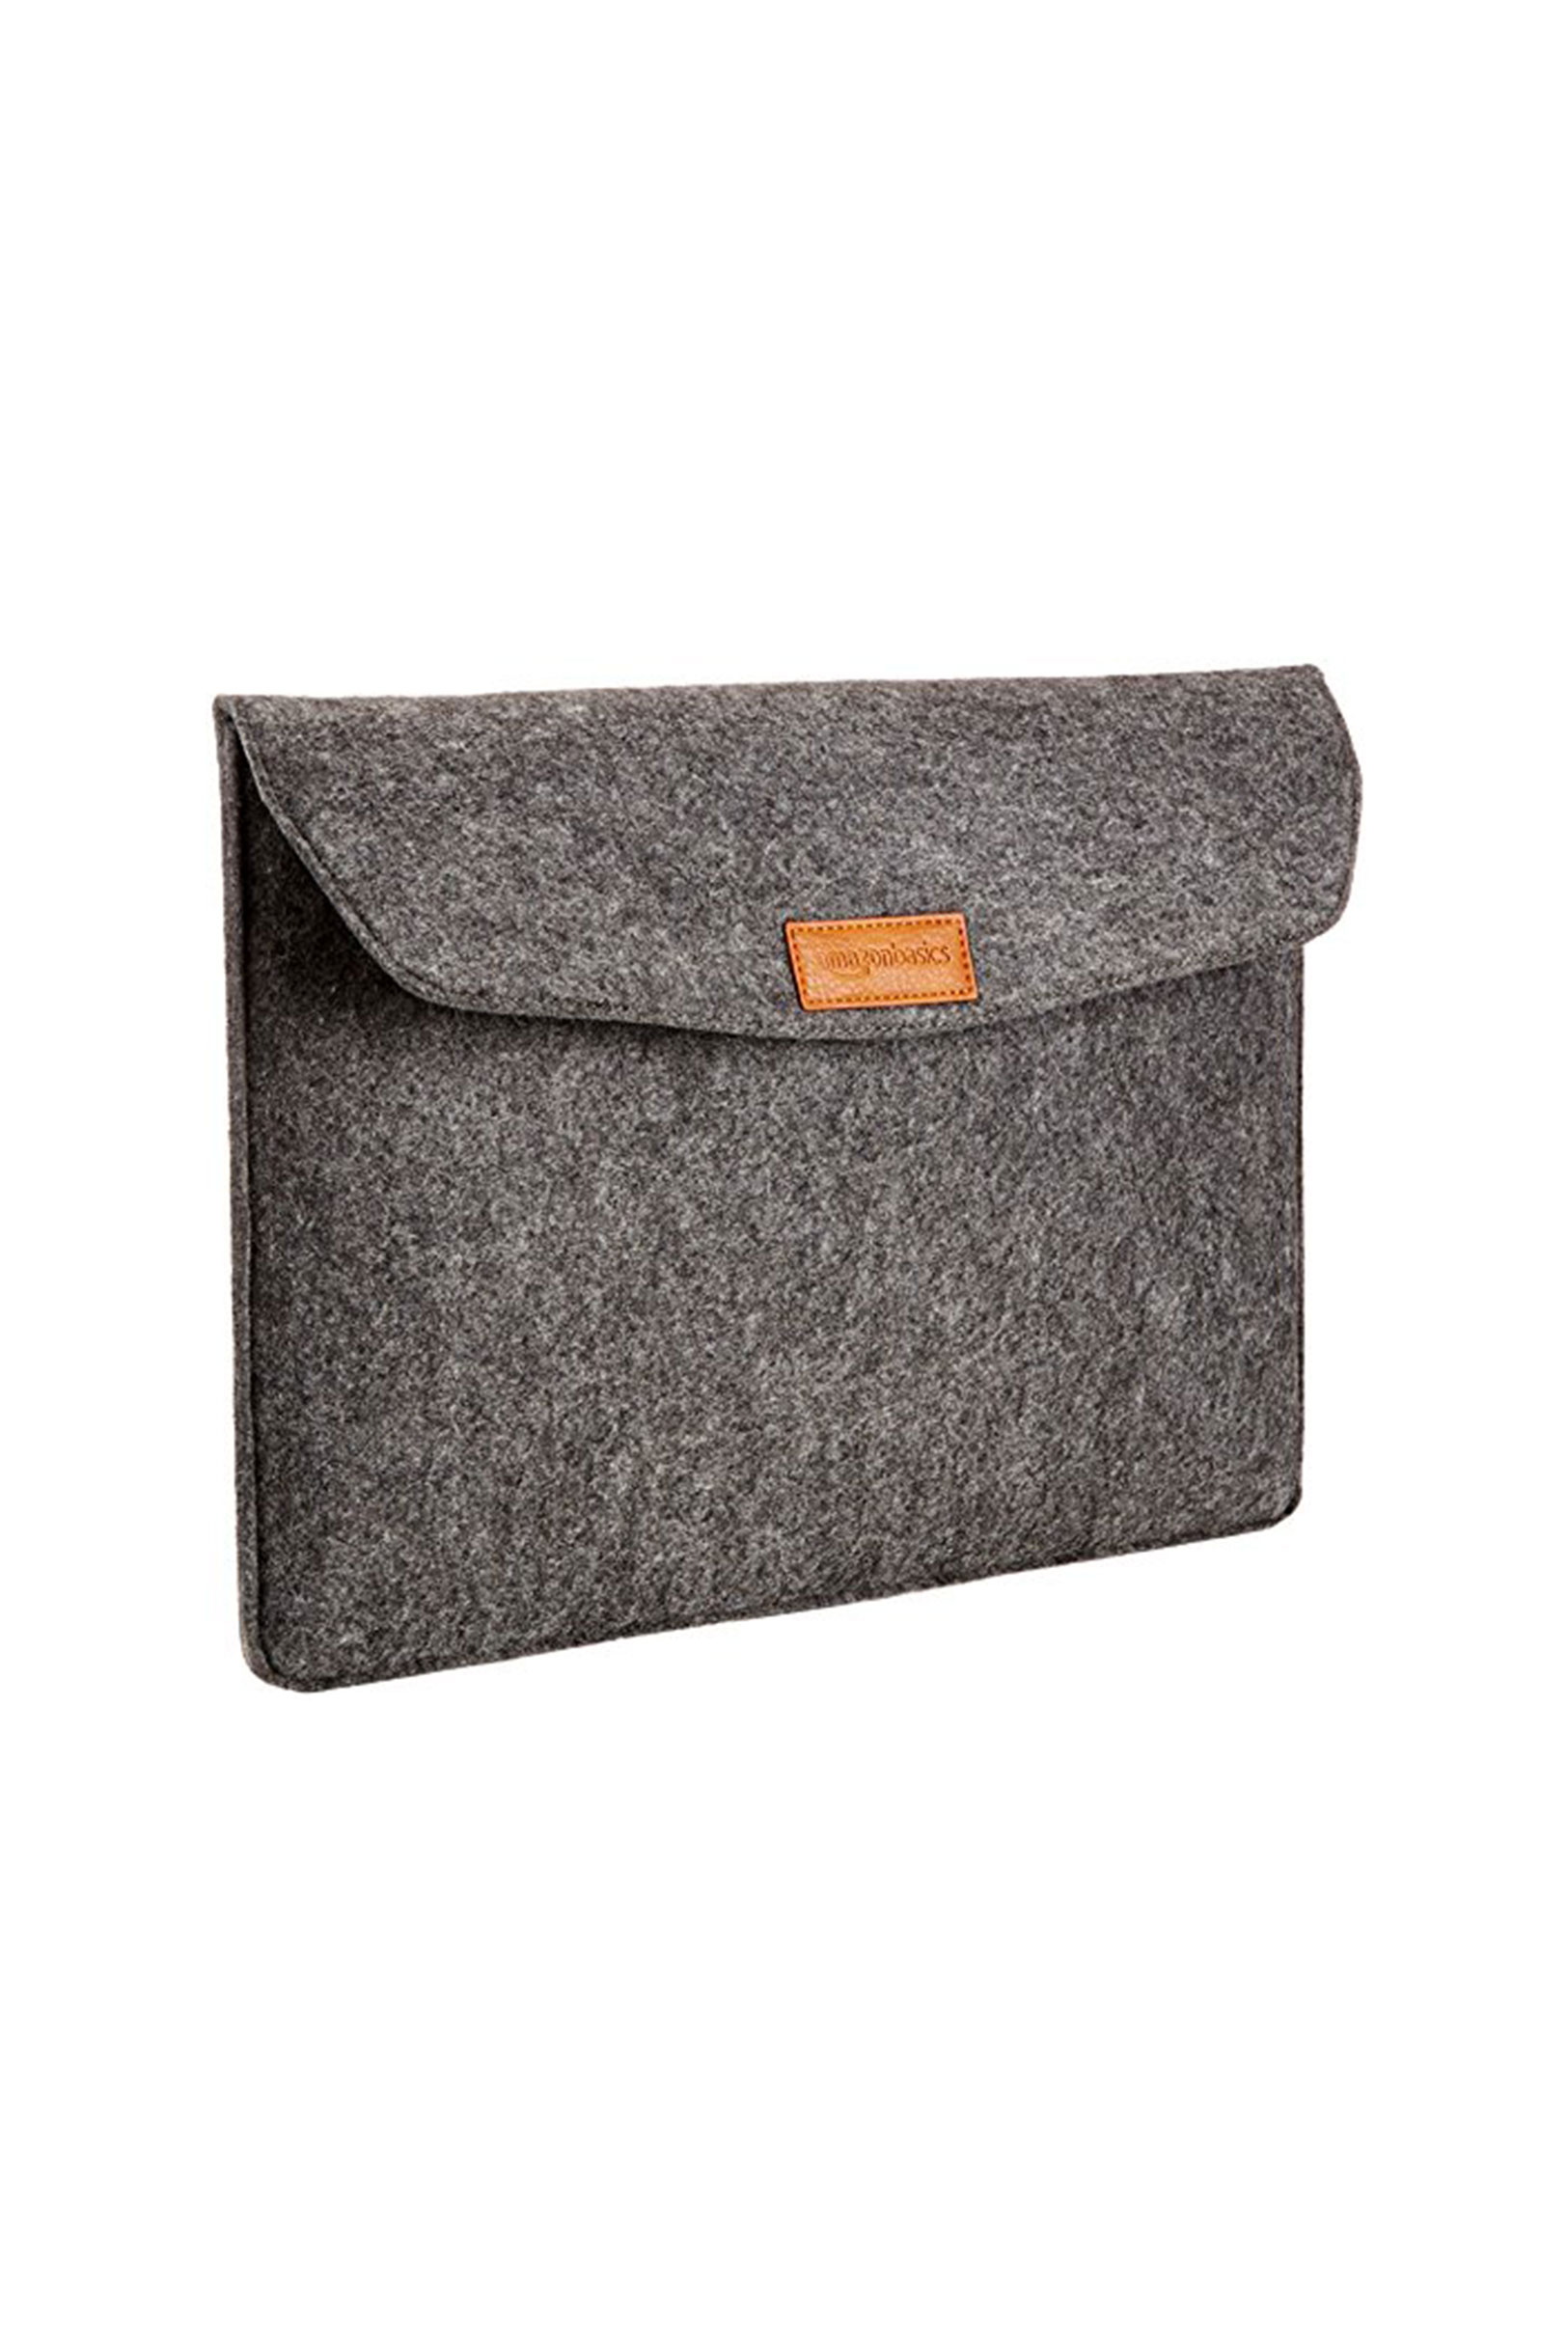 Felt-Laptop-Sleeve.jpg